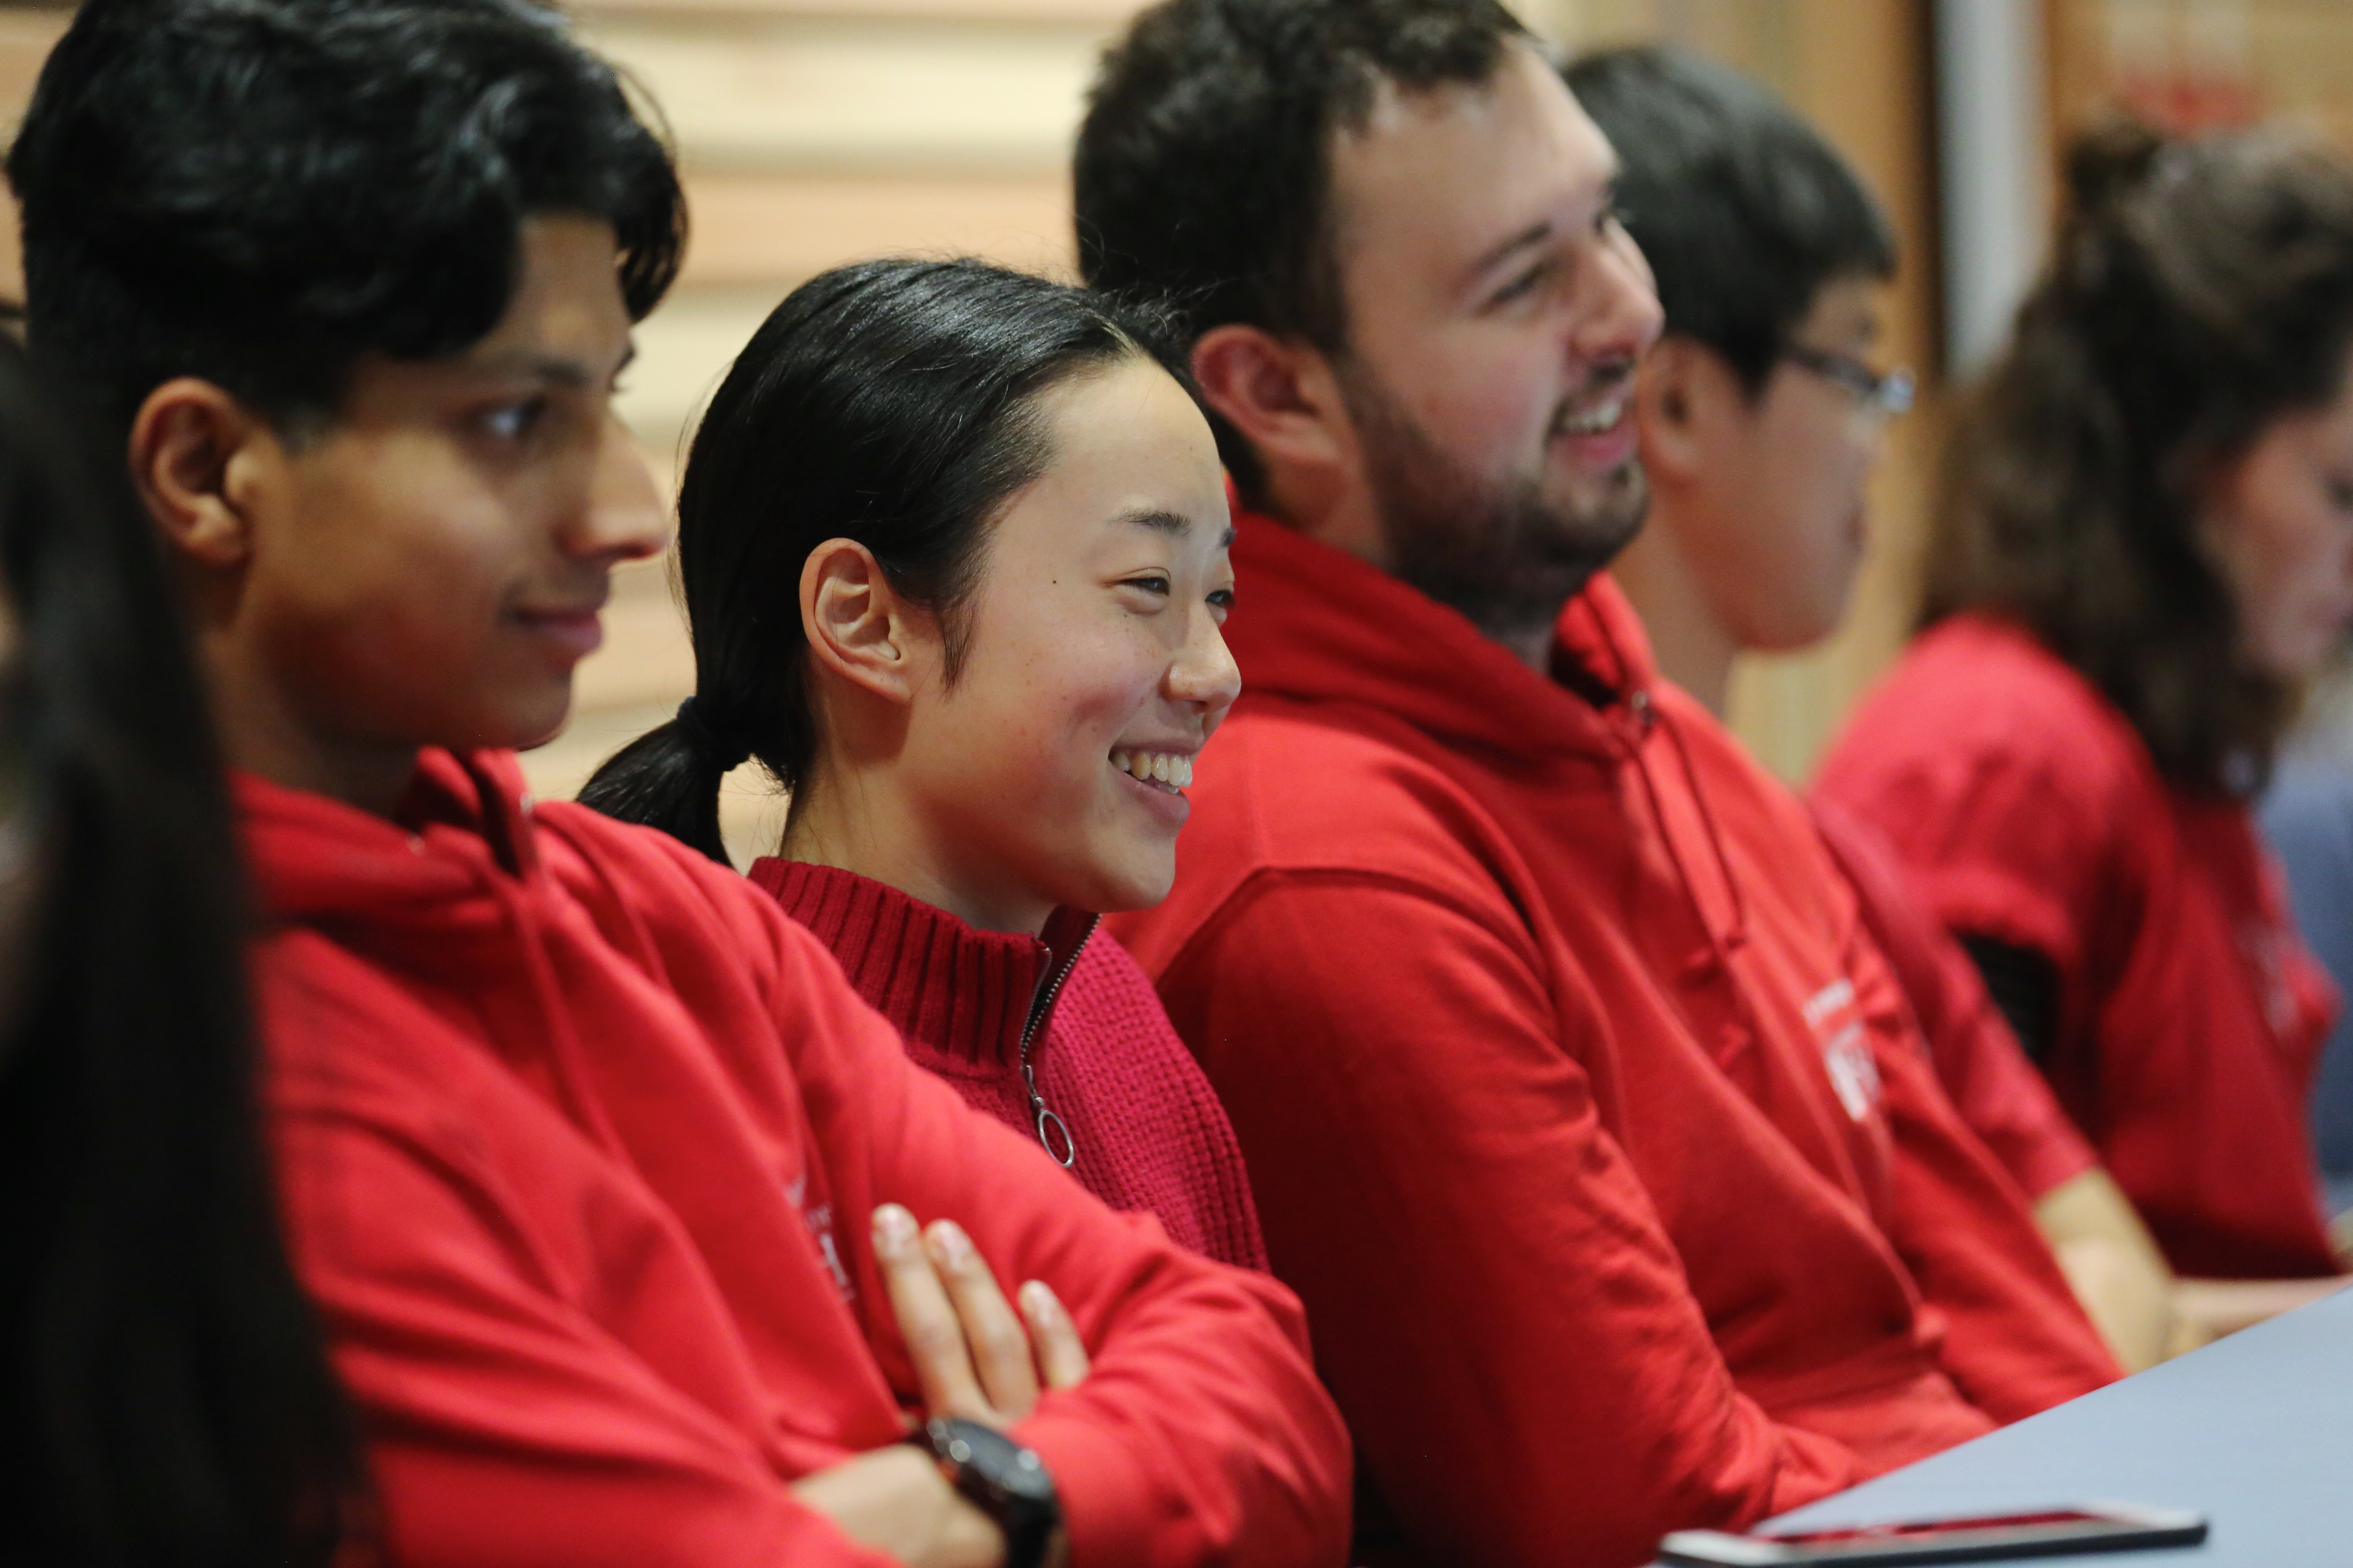 Undergraduates in red hoodies sat down watching the awards